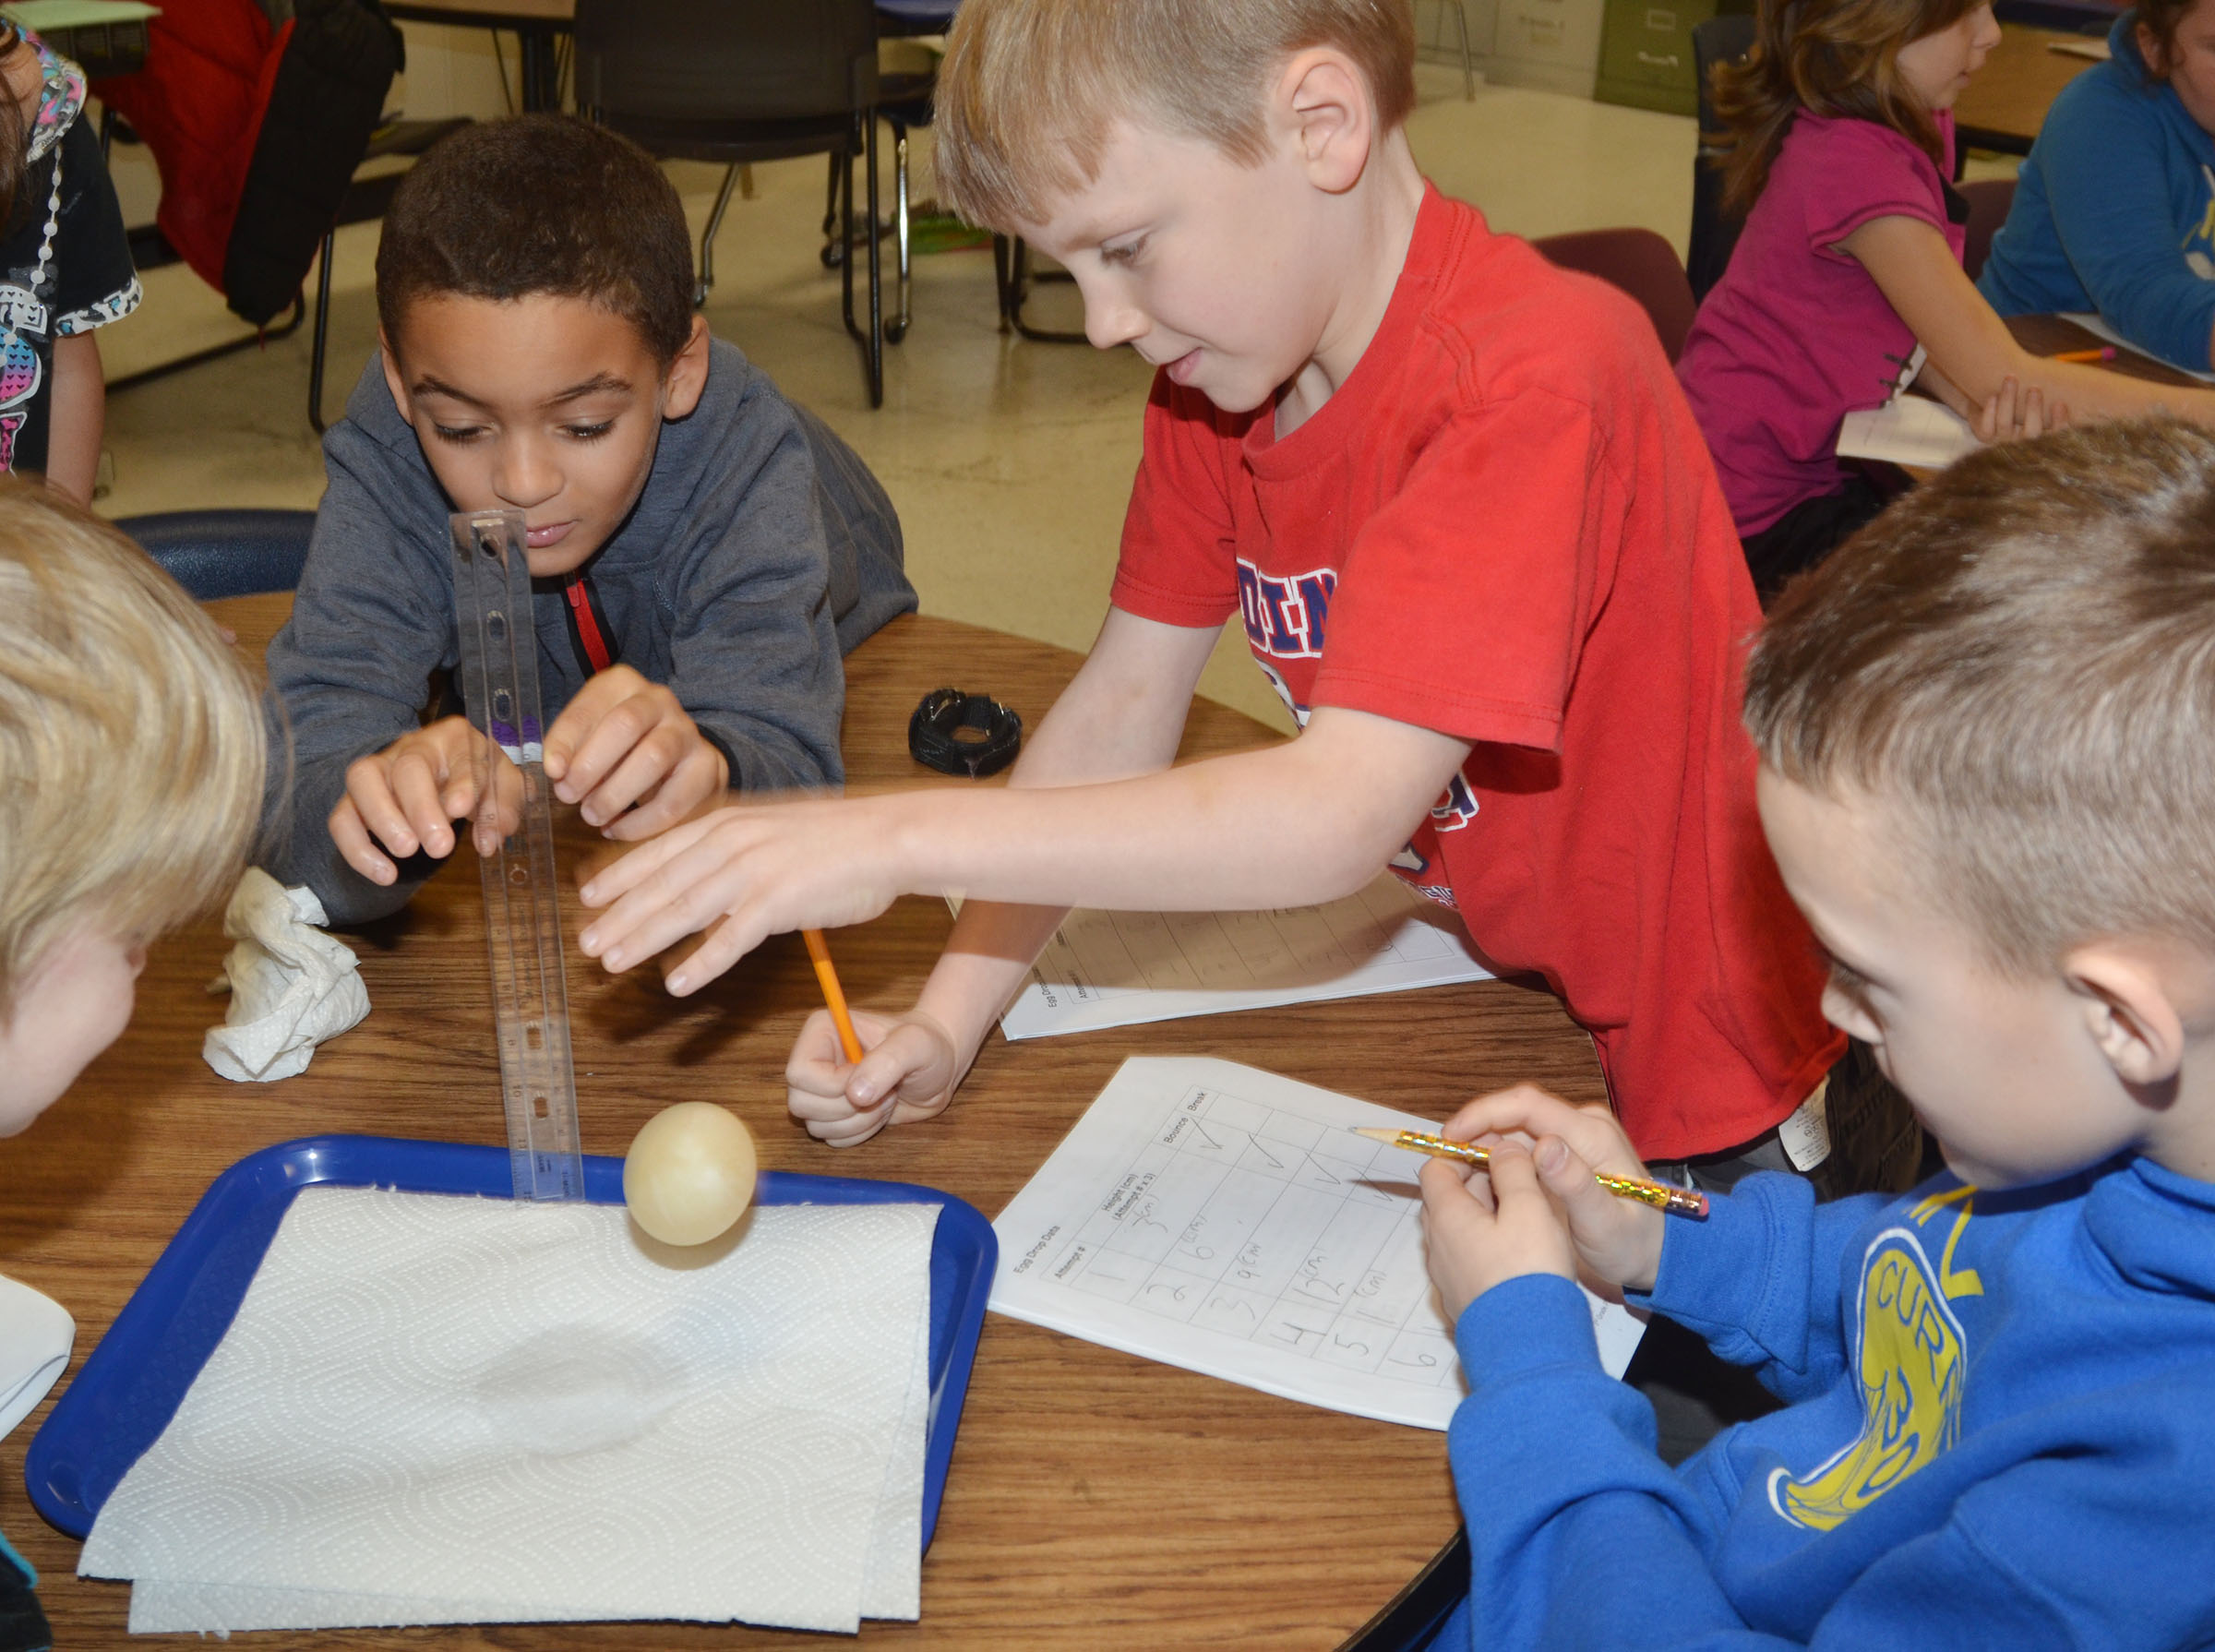 CES third-graders, from left, Jaden Barbee, Connor Coots and Caysen Tungate watch as their egg is dropped to see if its membrane will protect it from breaking.